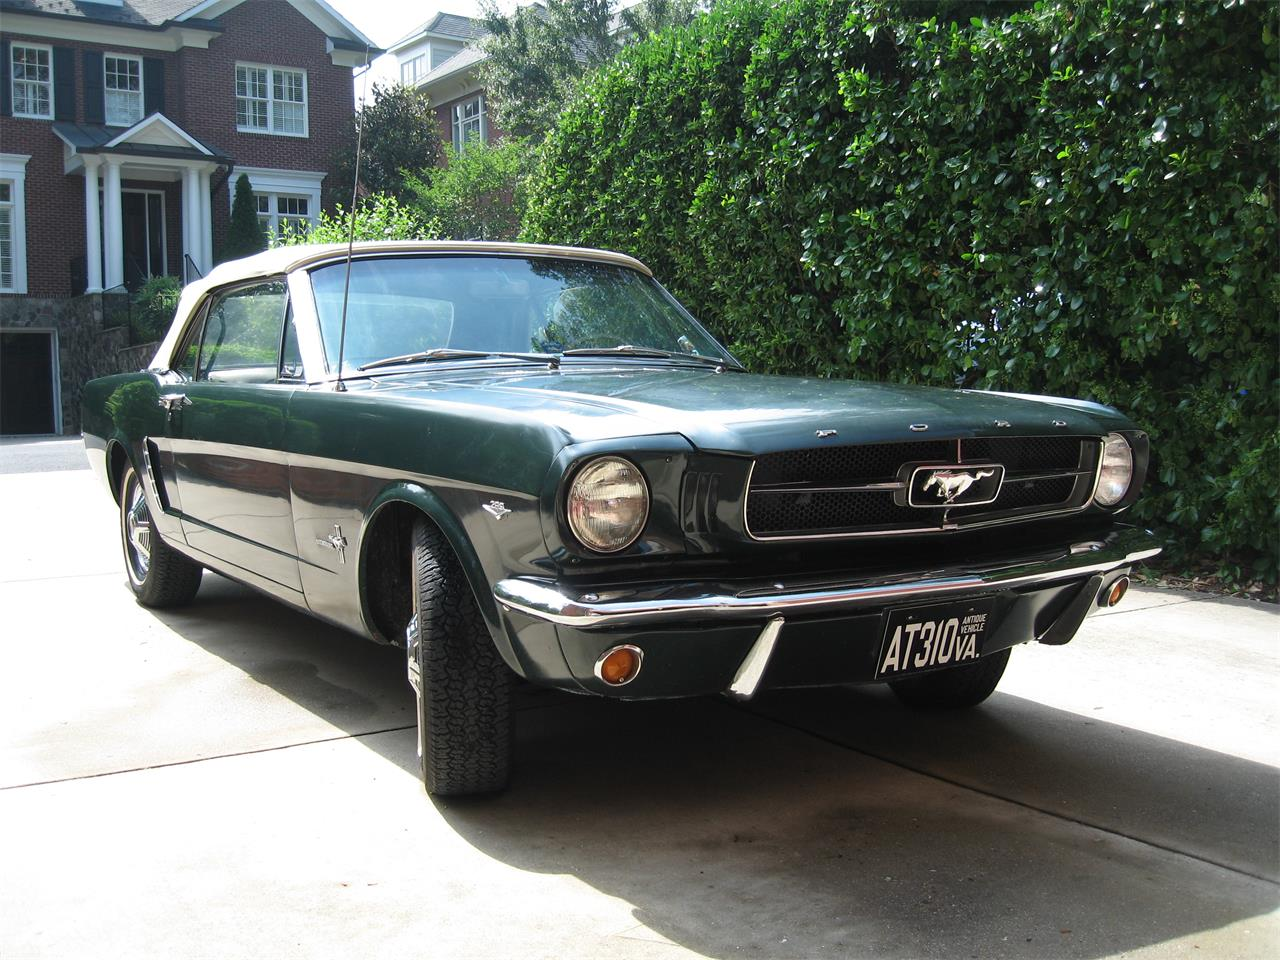 Large Picture of 1964 Ford Mustang - $26,995.00 Offered by a Private Seller - BZ8Z